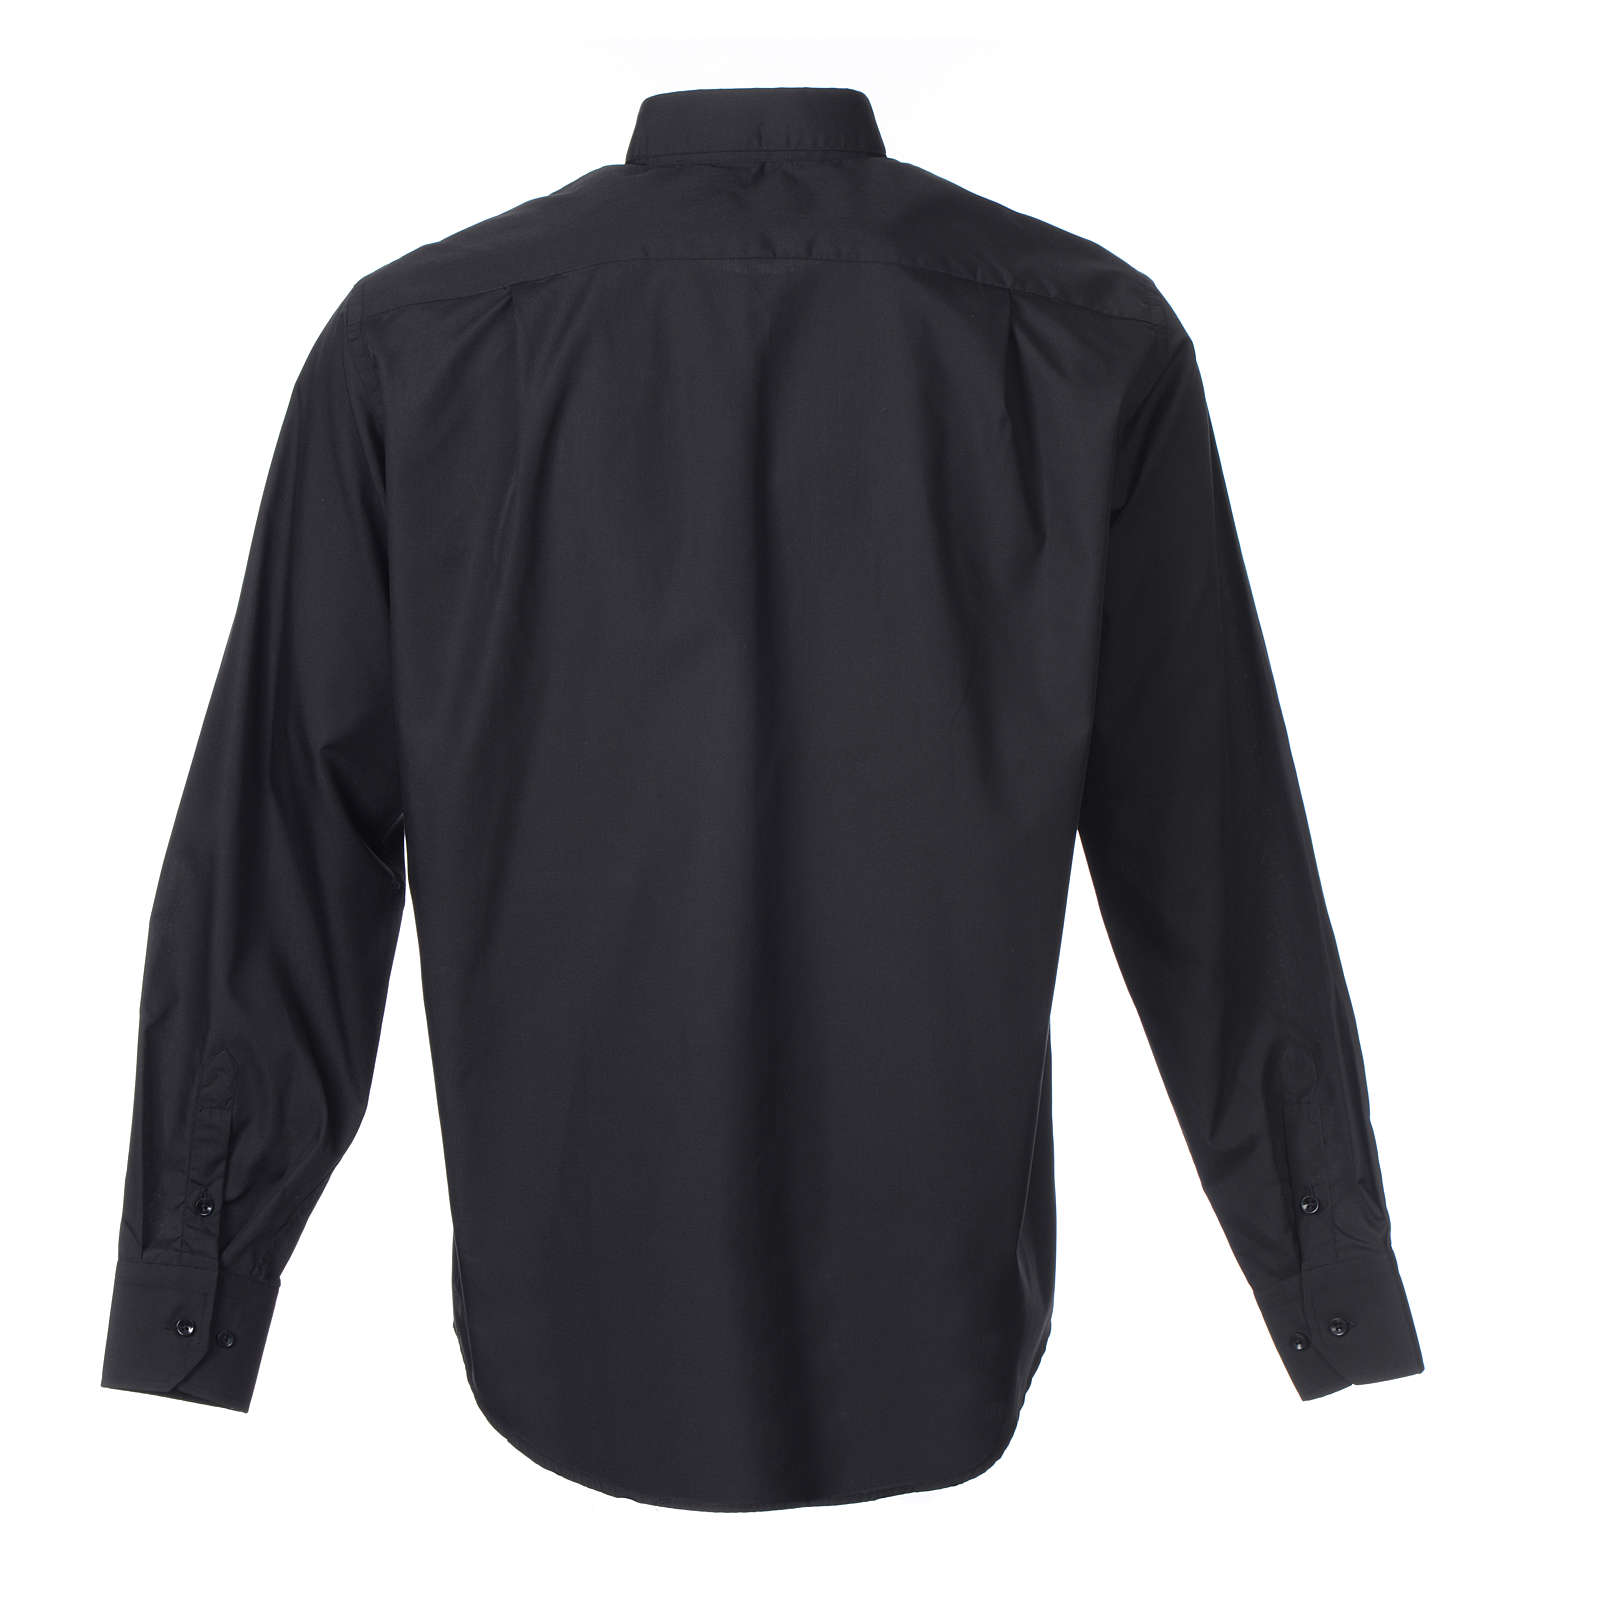 Long-sleeve clergy shirt solid color mixed cotton Black 4